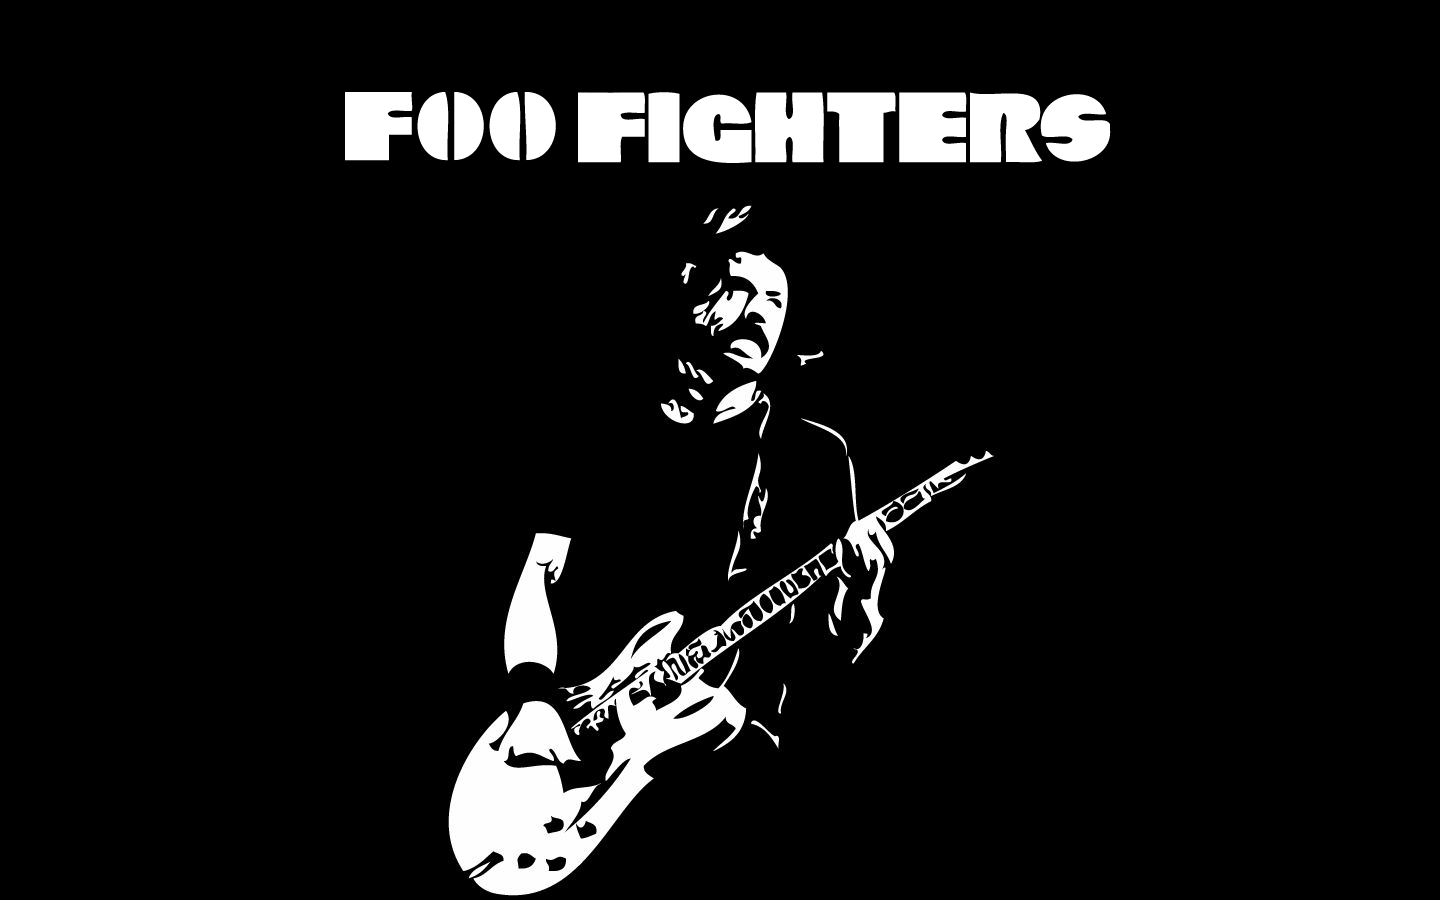 foo fighters wallpaper rock band 1440x900